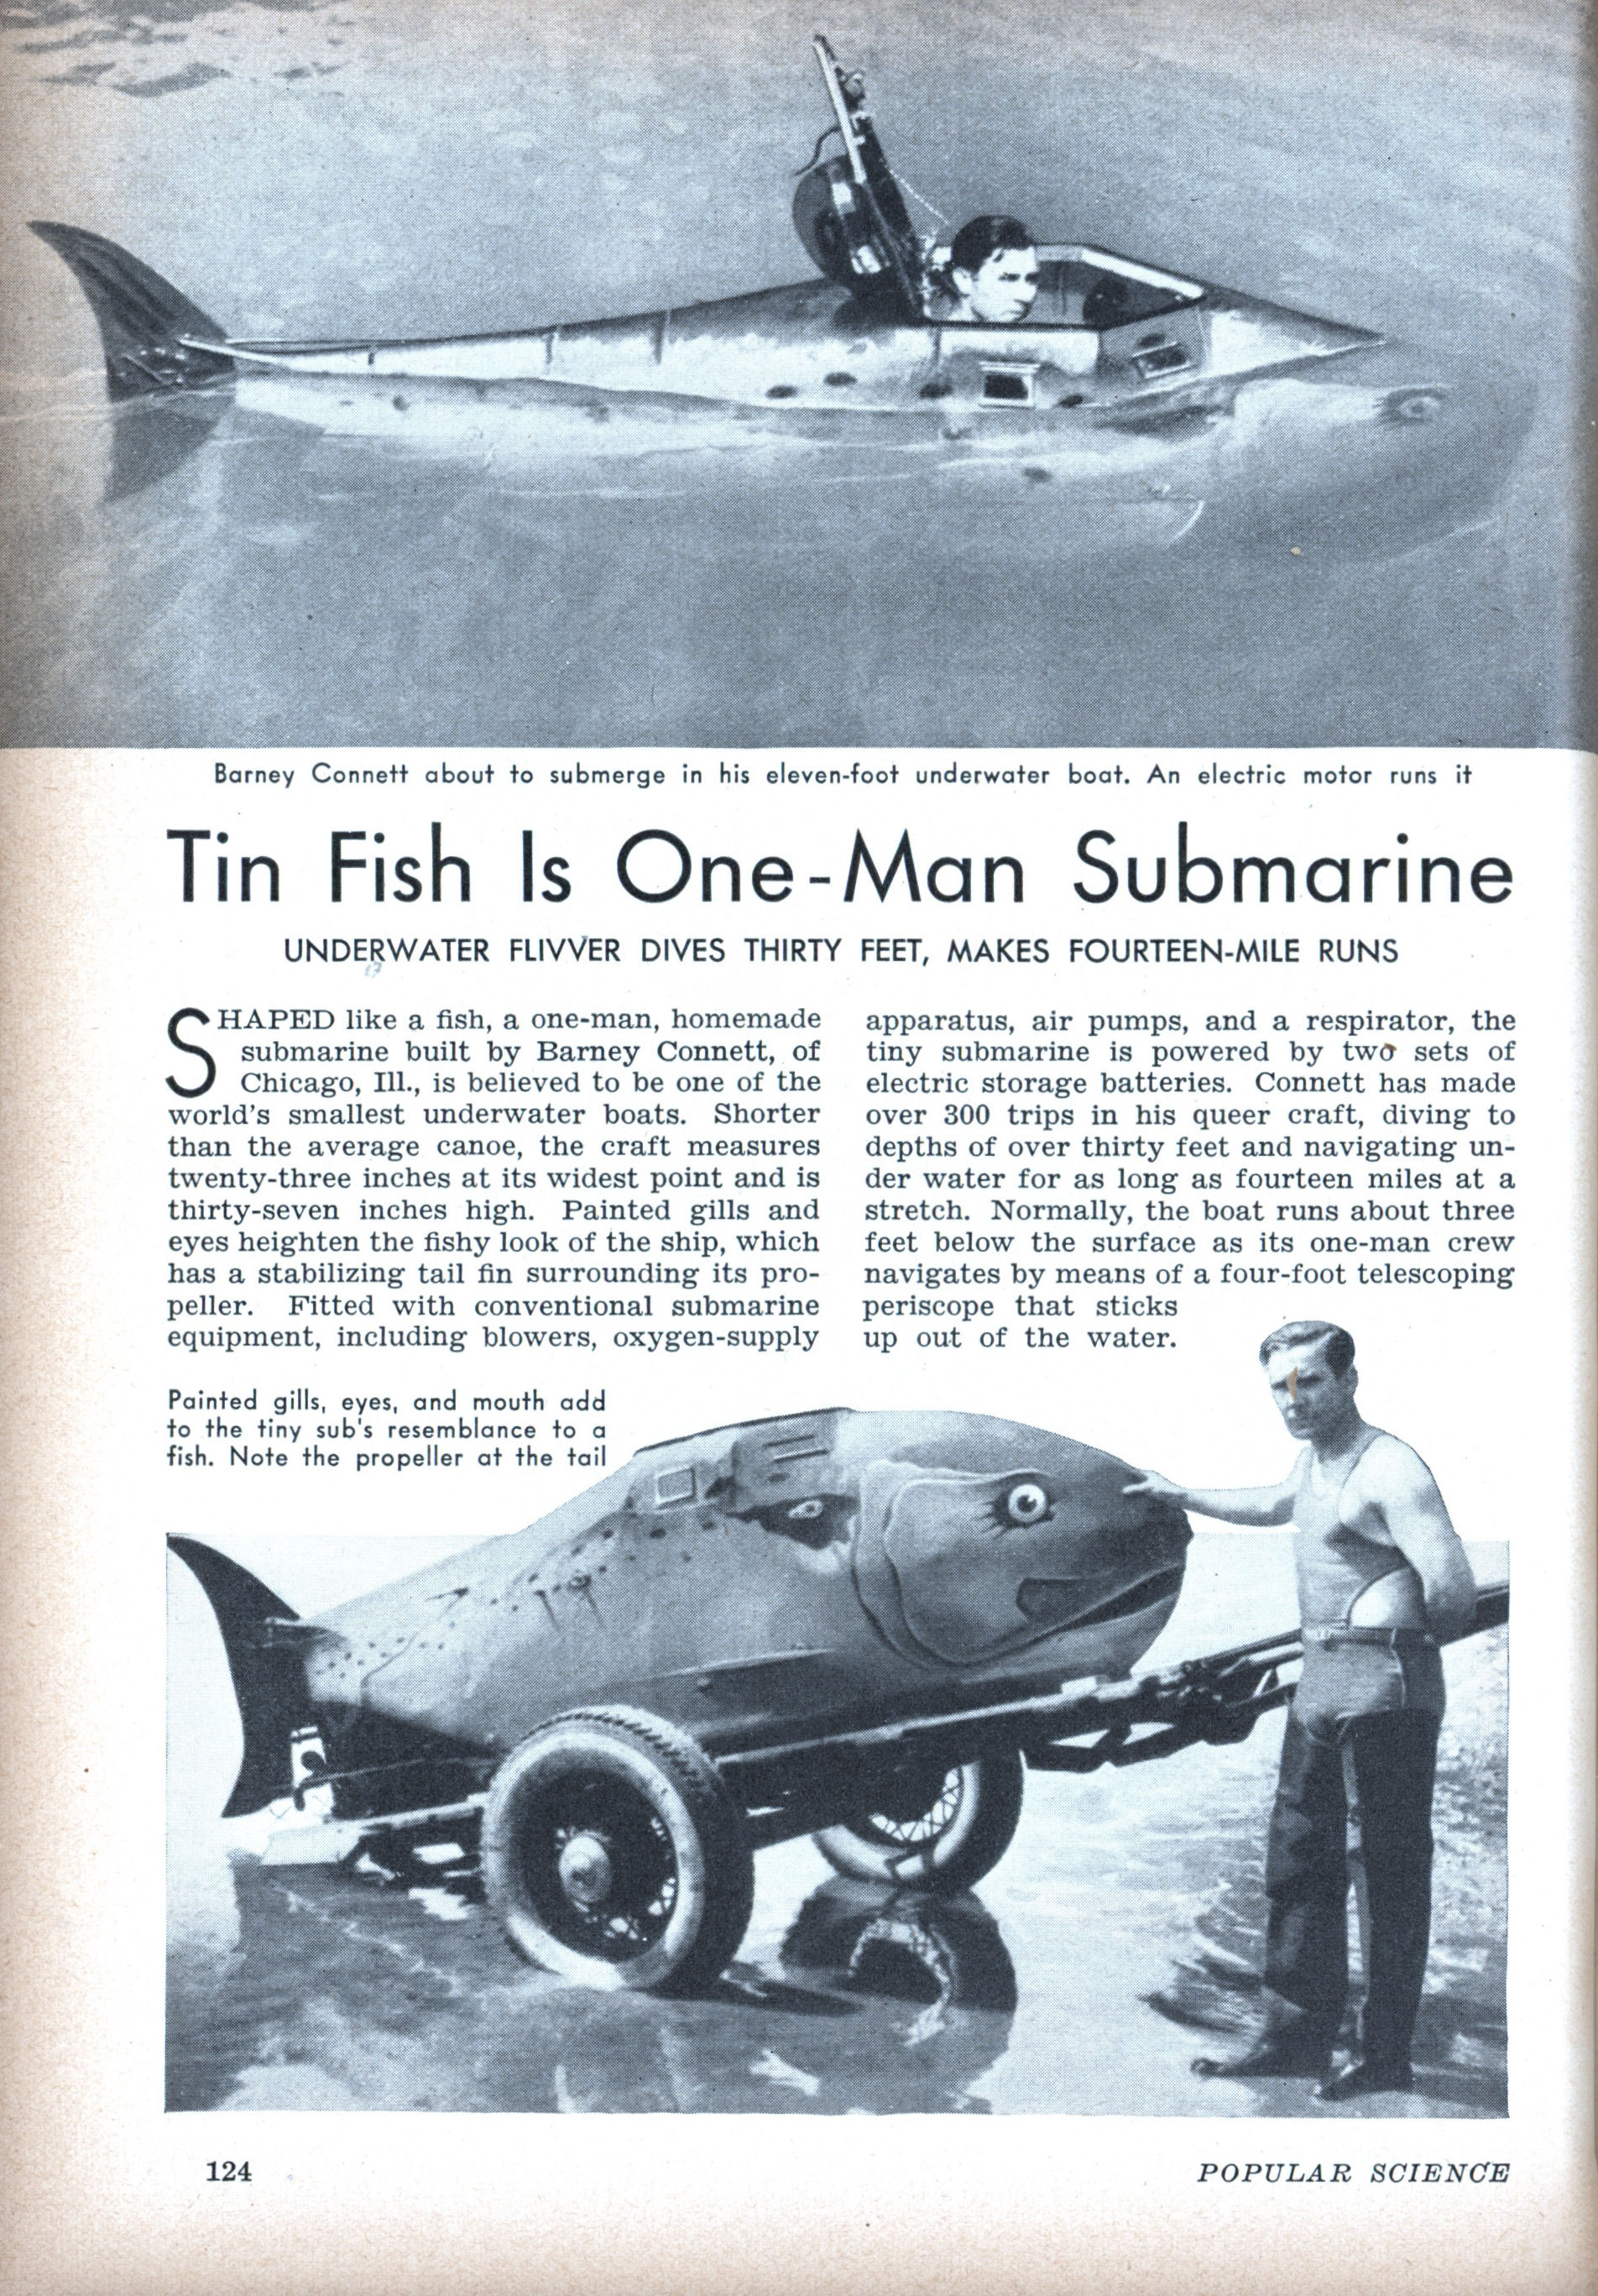 1000 images about submarines submersibles rovs on pinterest for Ttr fishing guide